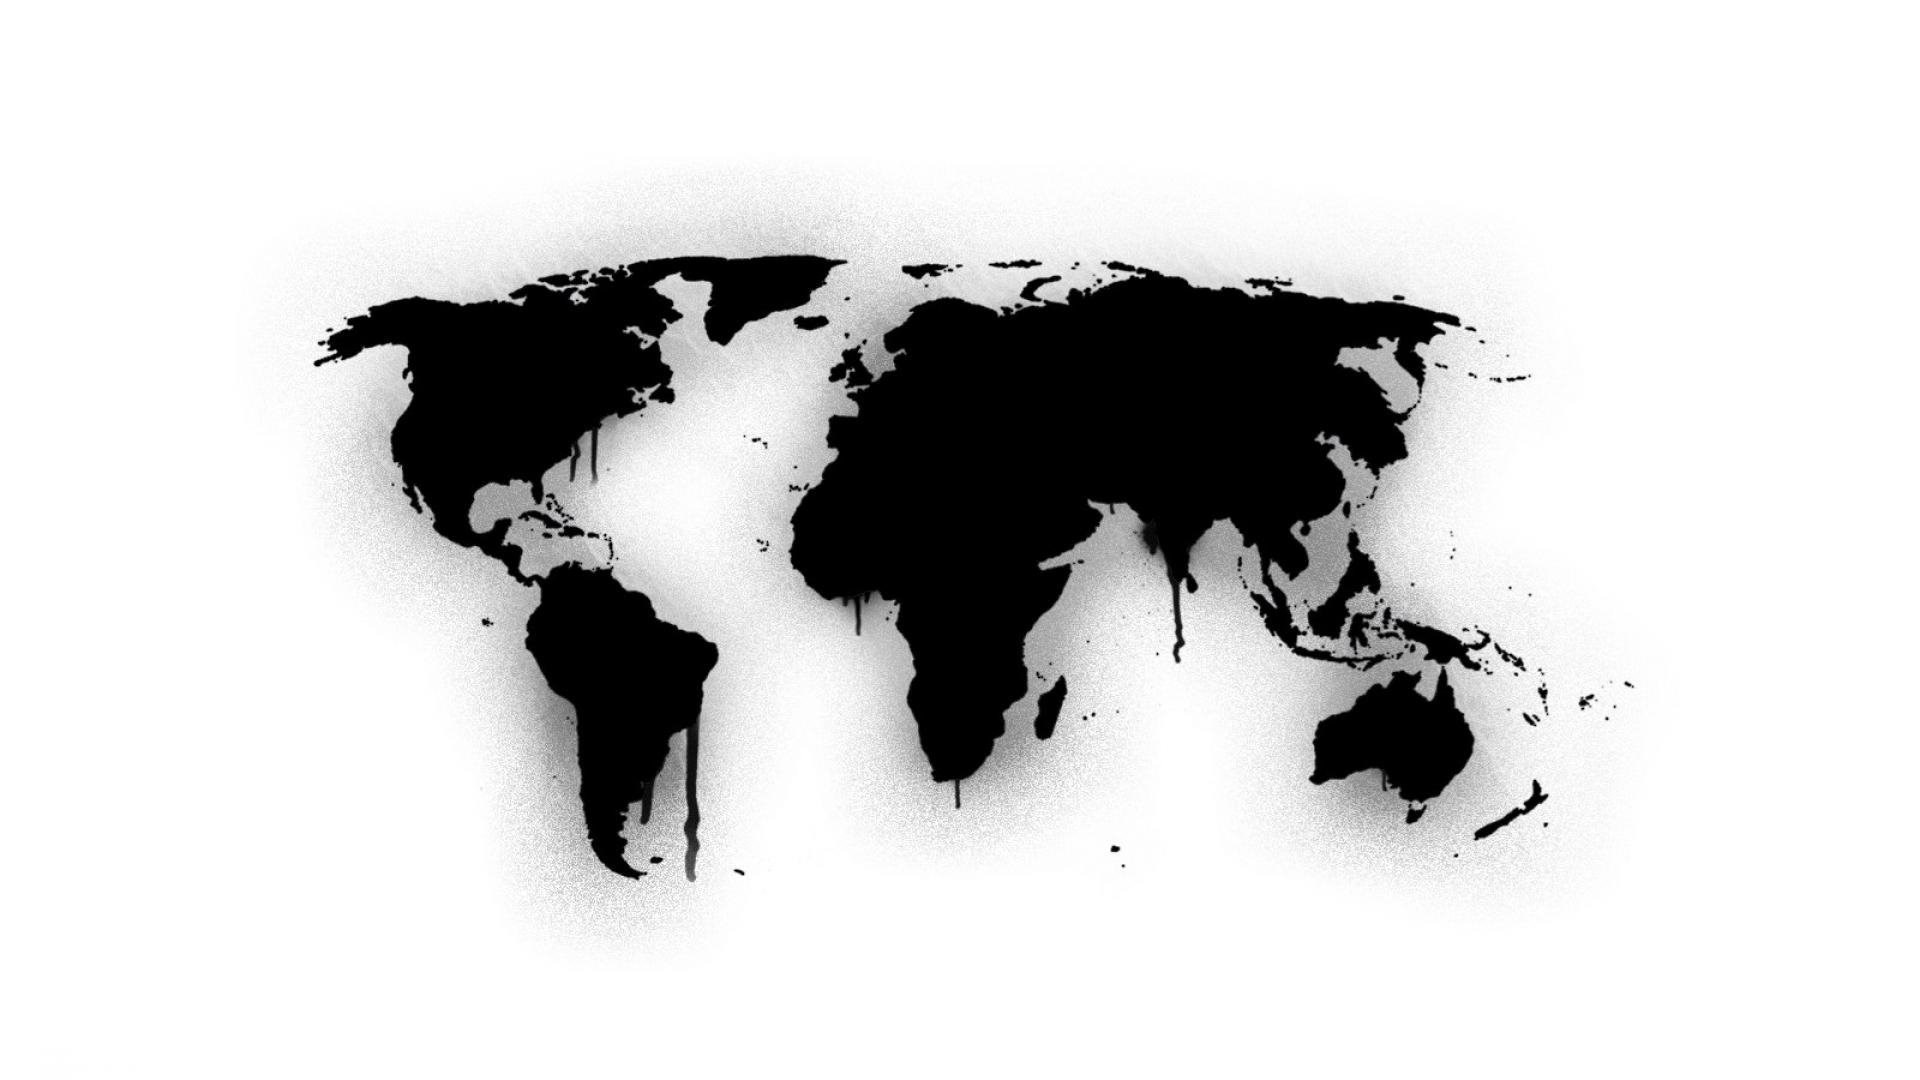 World Map High Resolution Black On White Hd Wallpapers